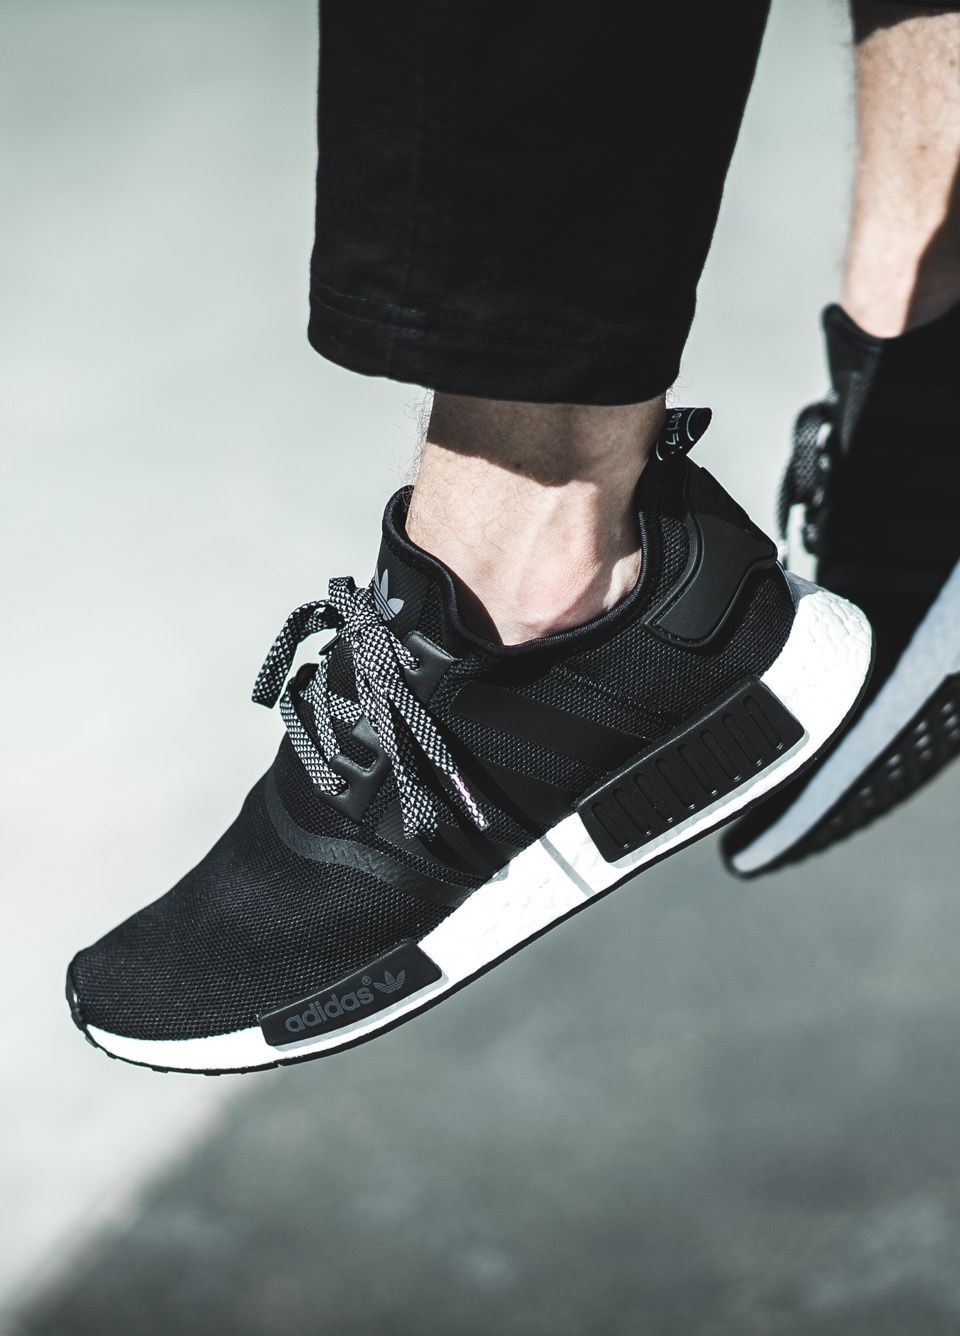 lowest price cc0ae a45e3 adidas NMD R1 Reflective Pack black  sneakernews  Sneakers  StreetStyle   Kicks